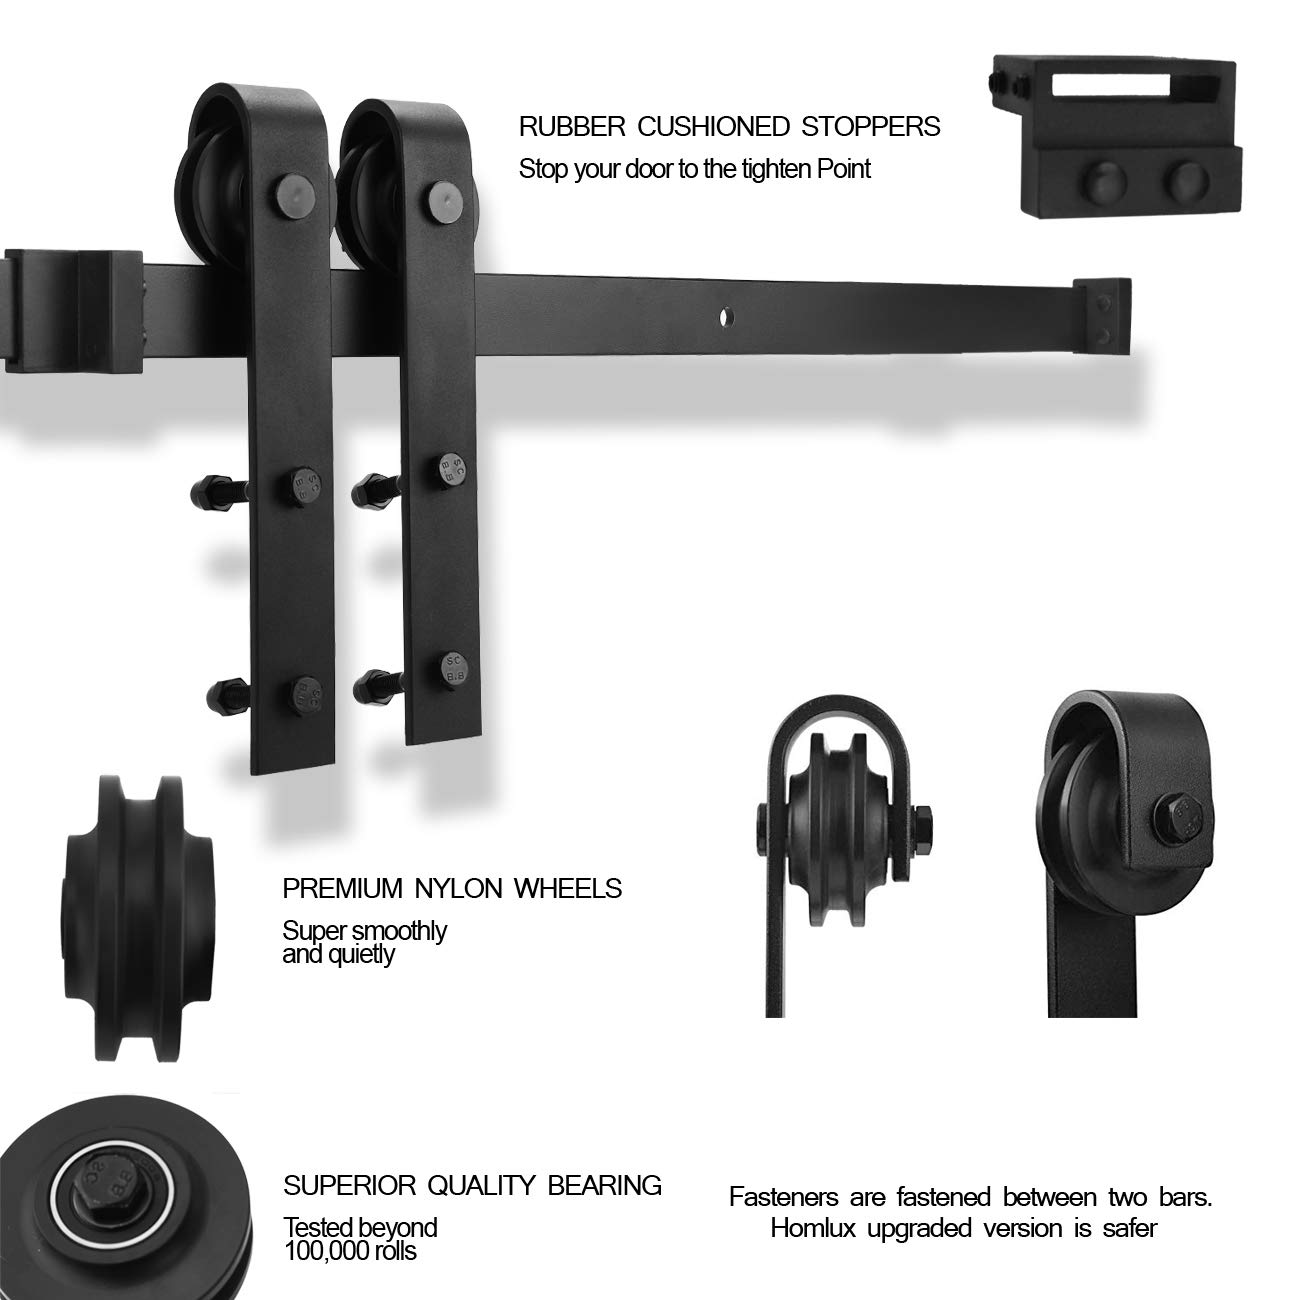 YIGOLD 6.6ft Heavy Duty Sturdy Sliding Barn Door Hardware Kit Factory Outlet Carbon Steel- Ultra Smoothly and Quietly Design-Easy Installation-Fit 35\